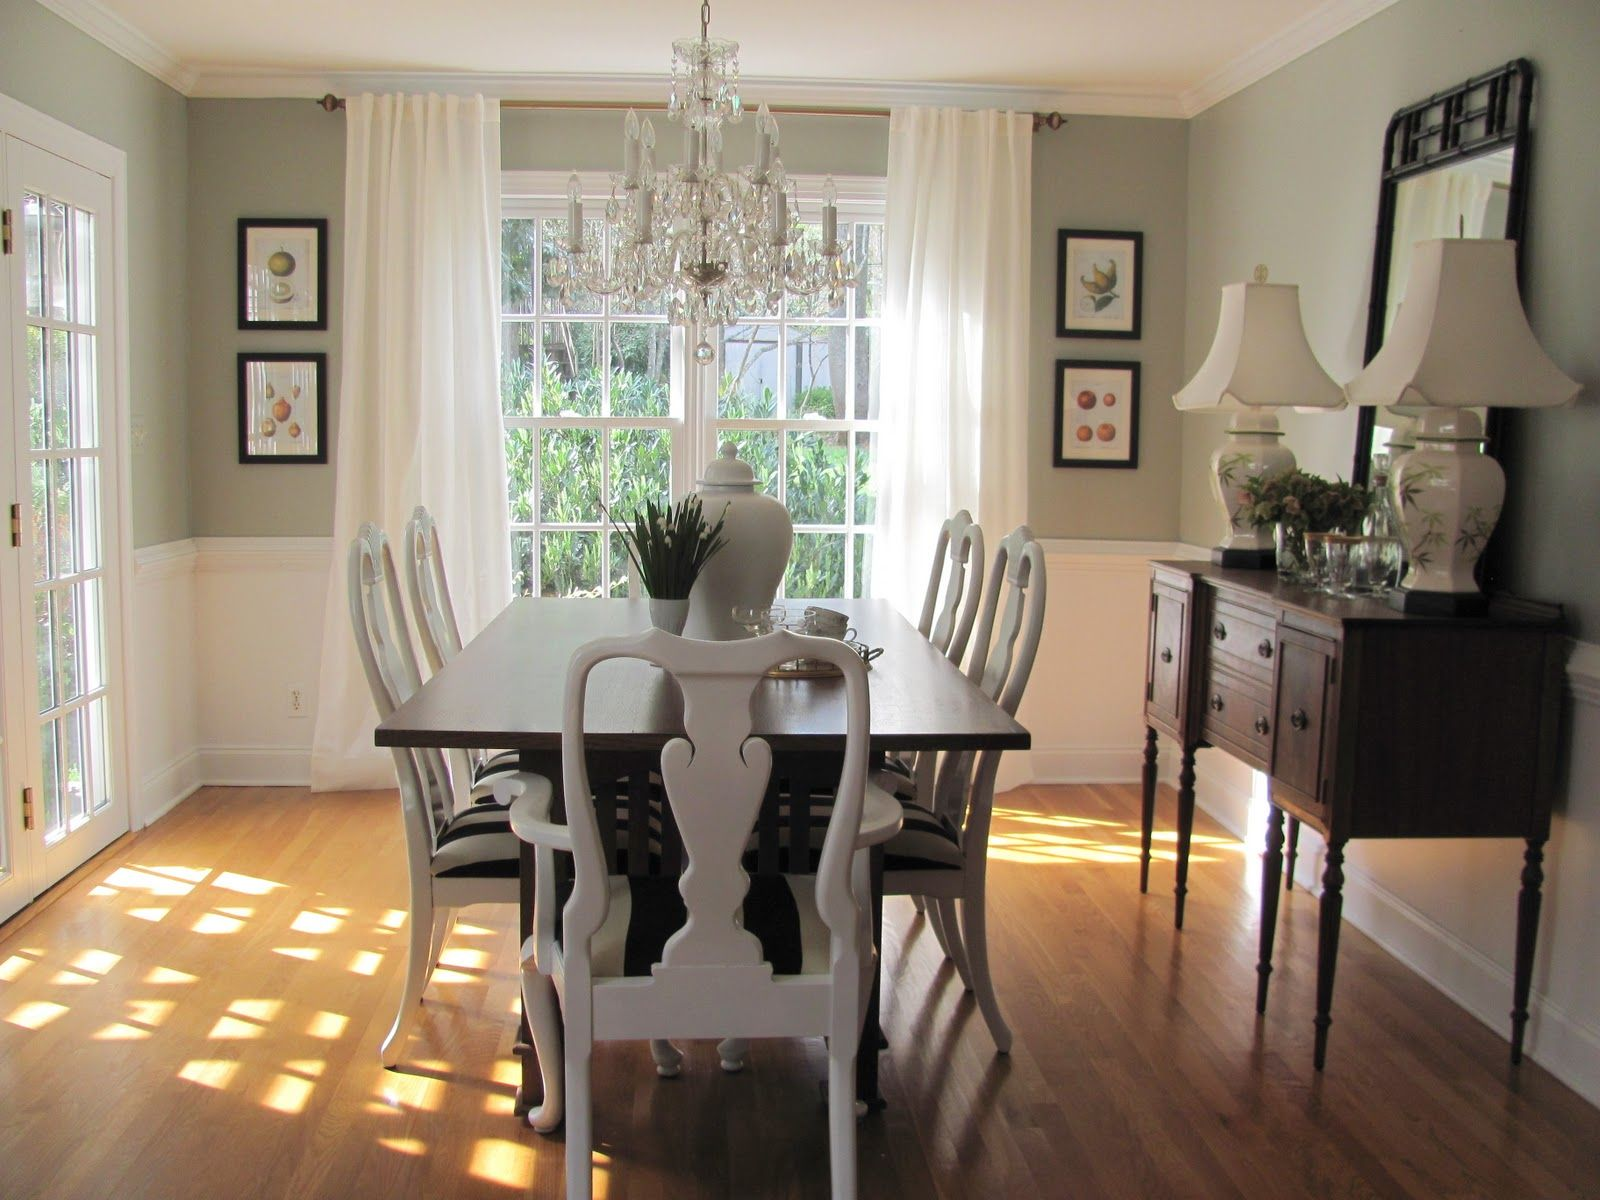 Dining Room Paint Ideas Colors dining room paint colors with chair rail - google search | forever